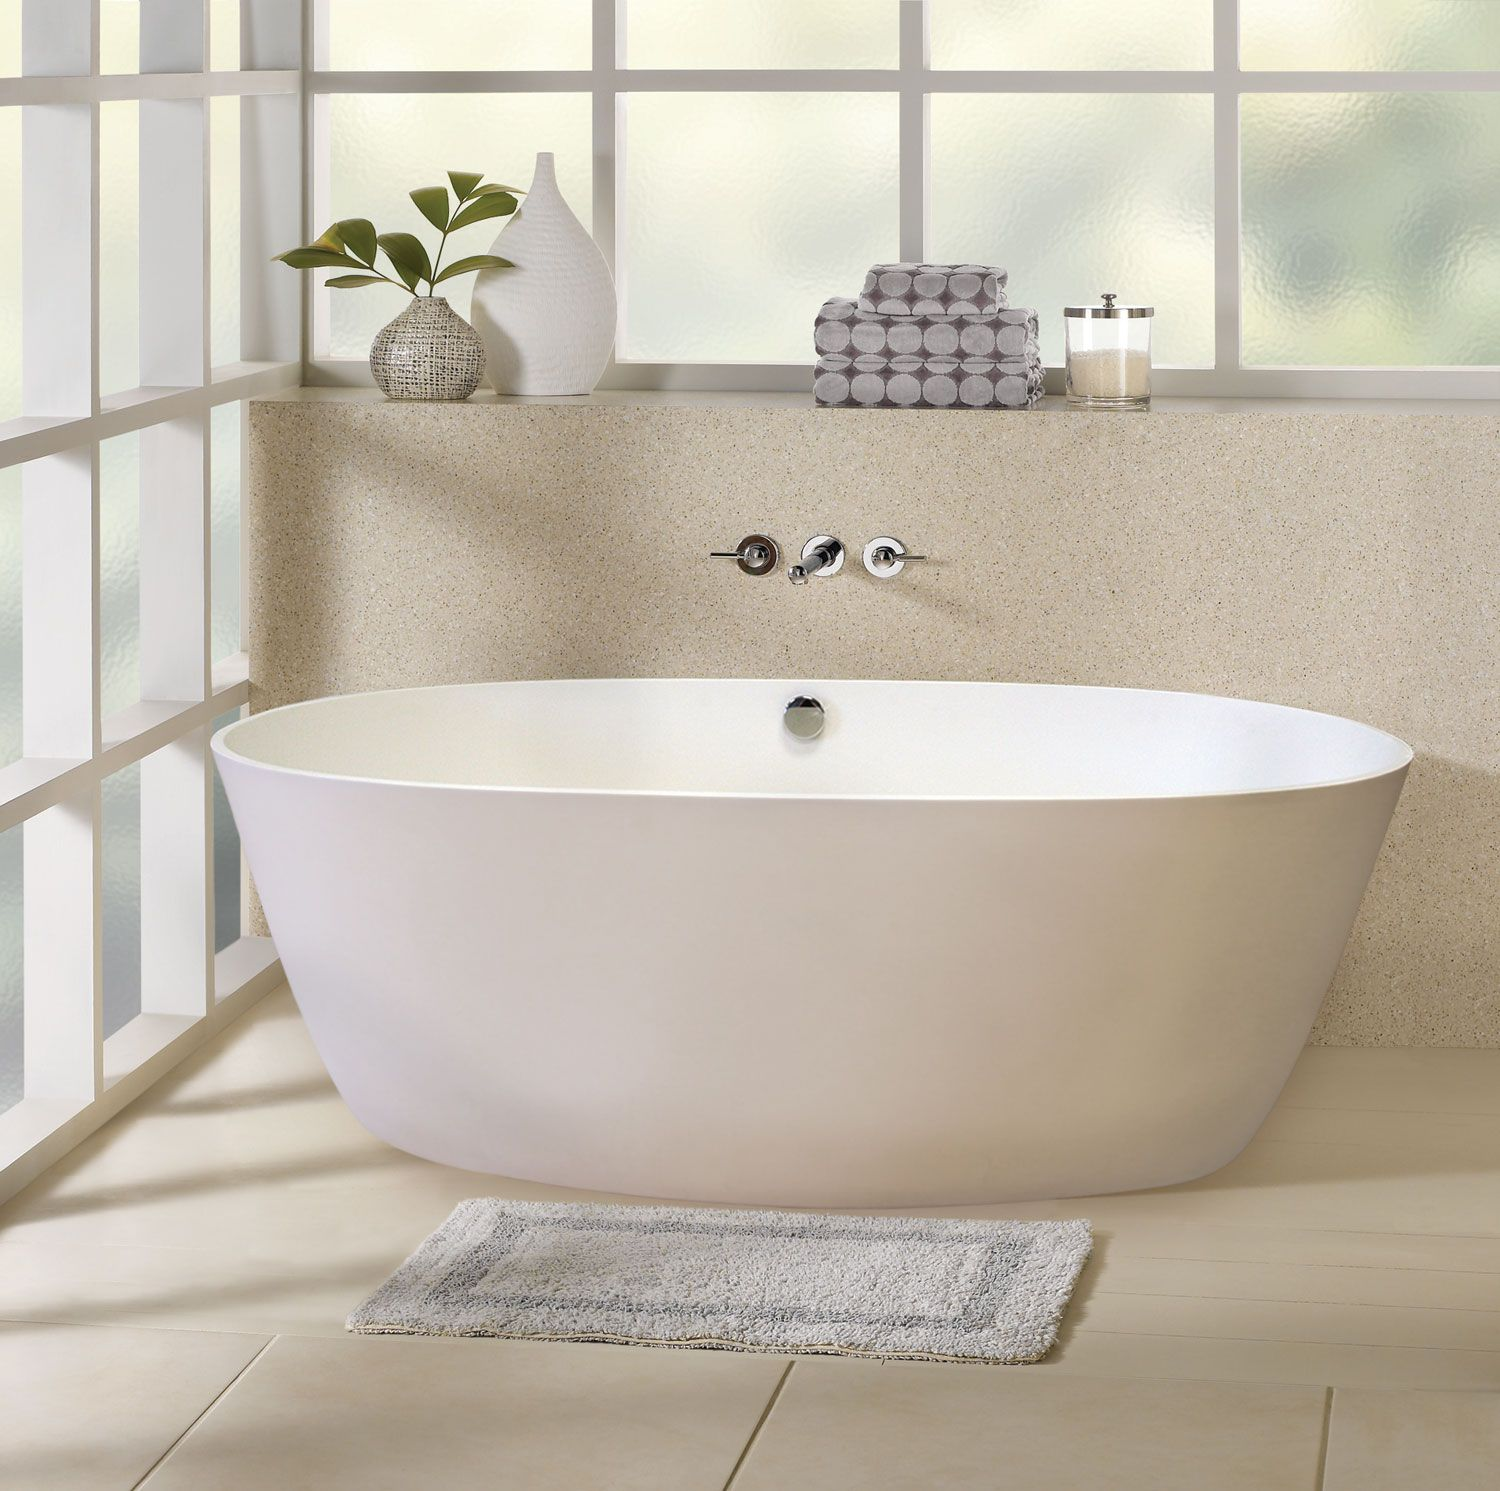 Best Bathroom Design Ideas with White Oval Freestanding Bathtub and ...